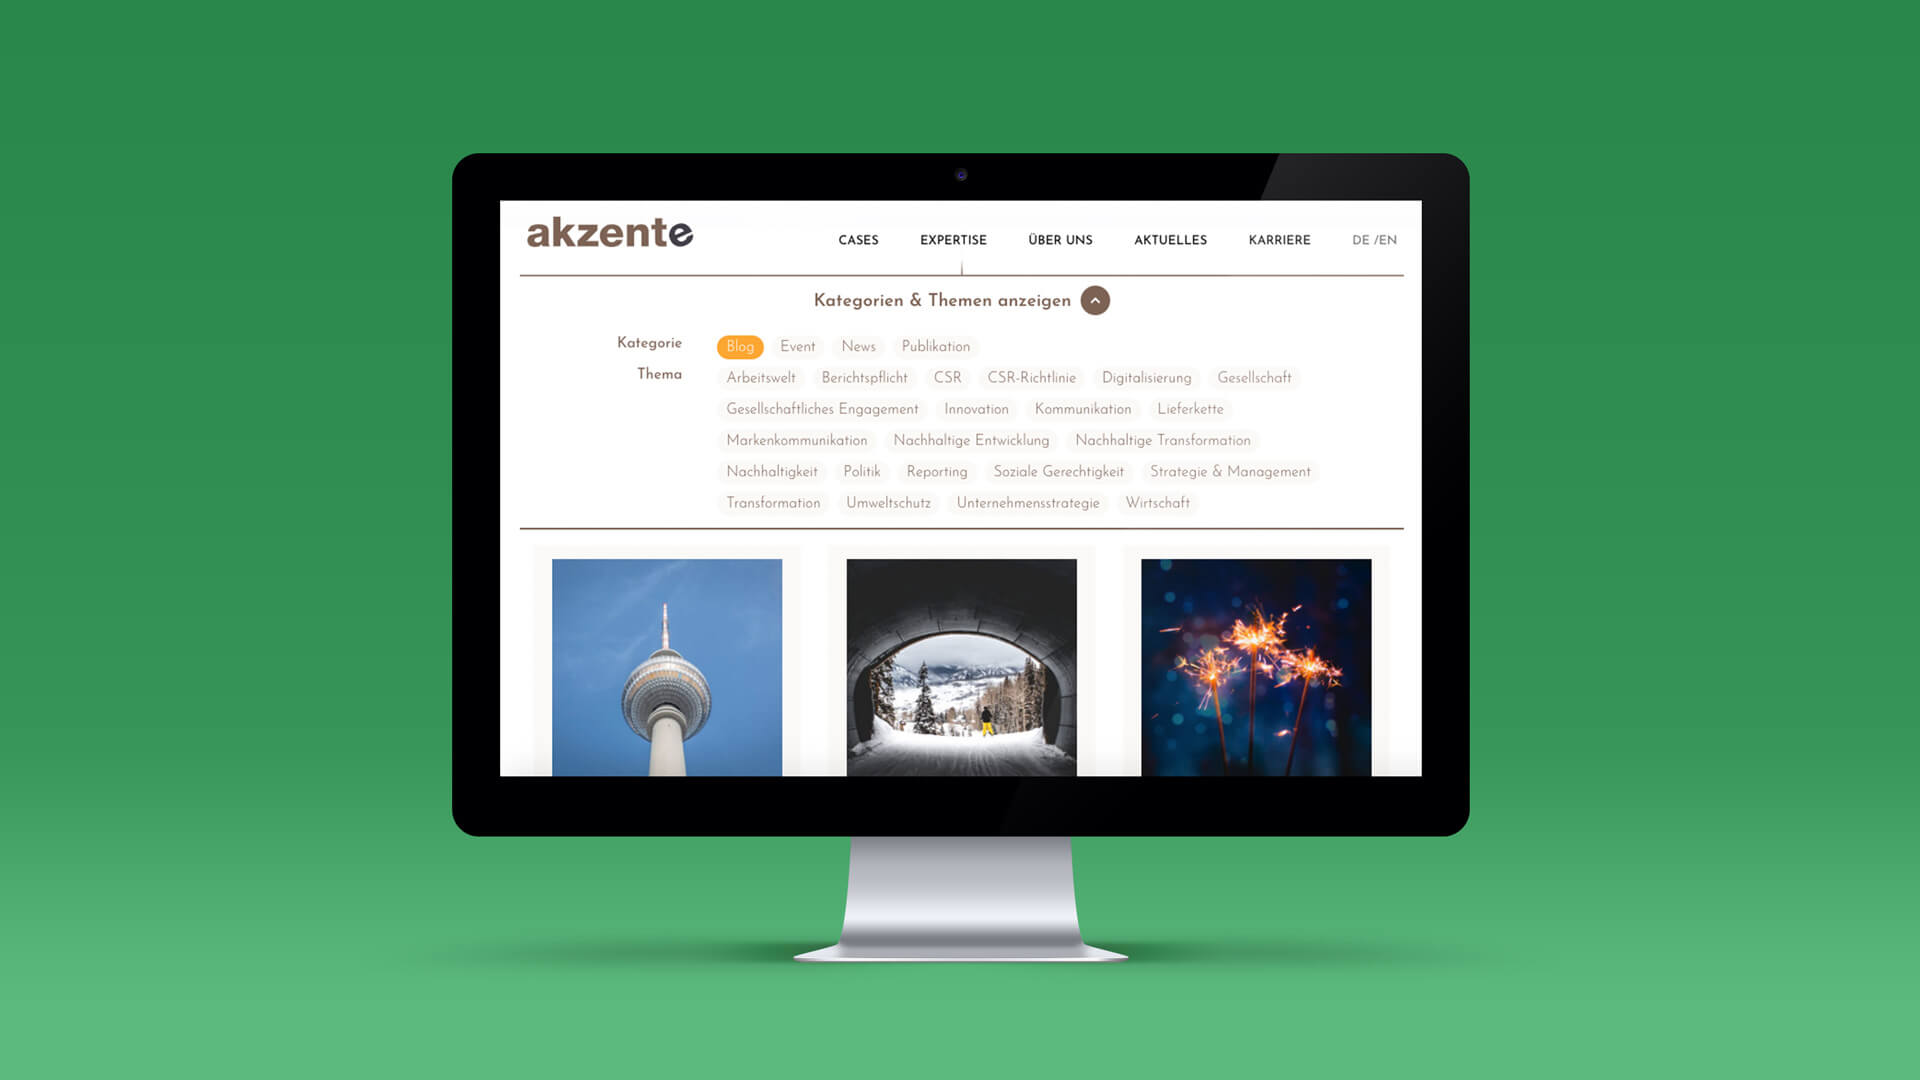 Mockup of the Blog Page for akzente